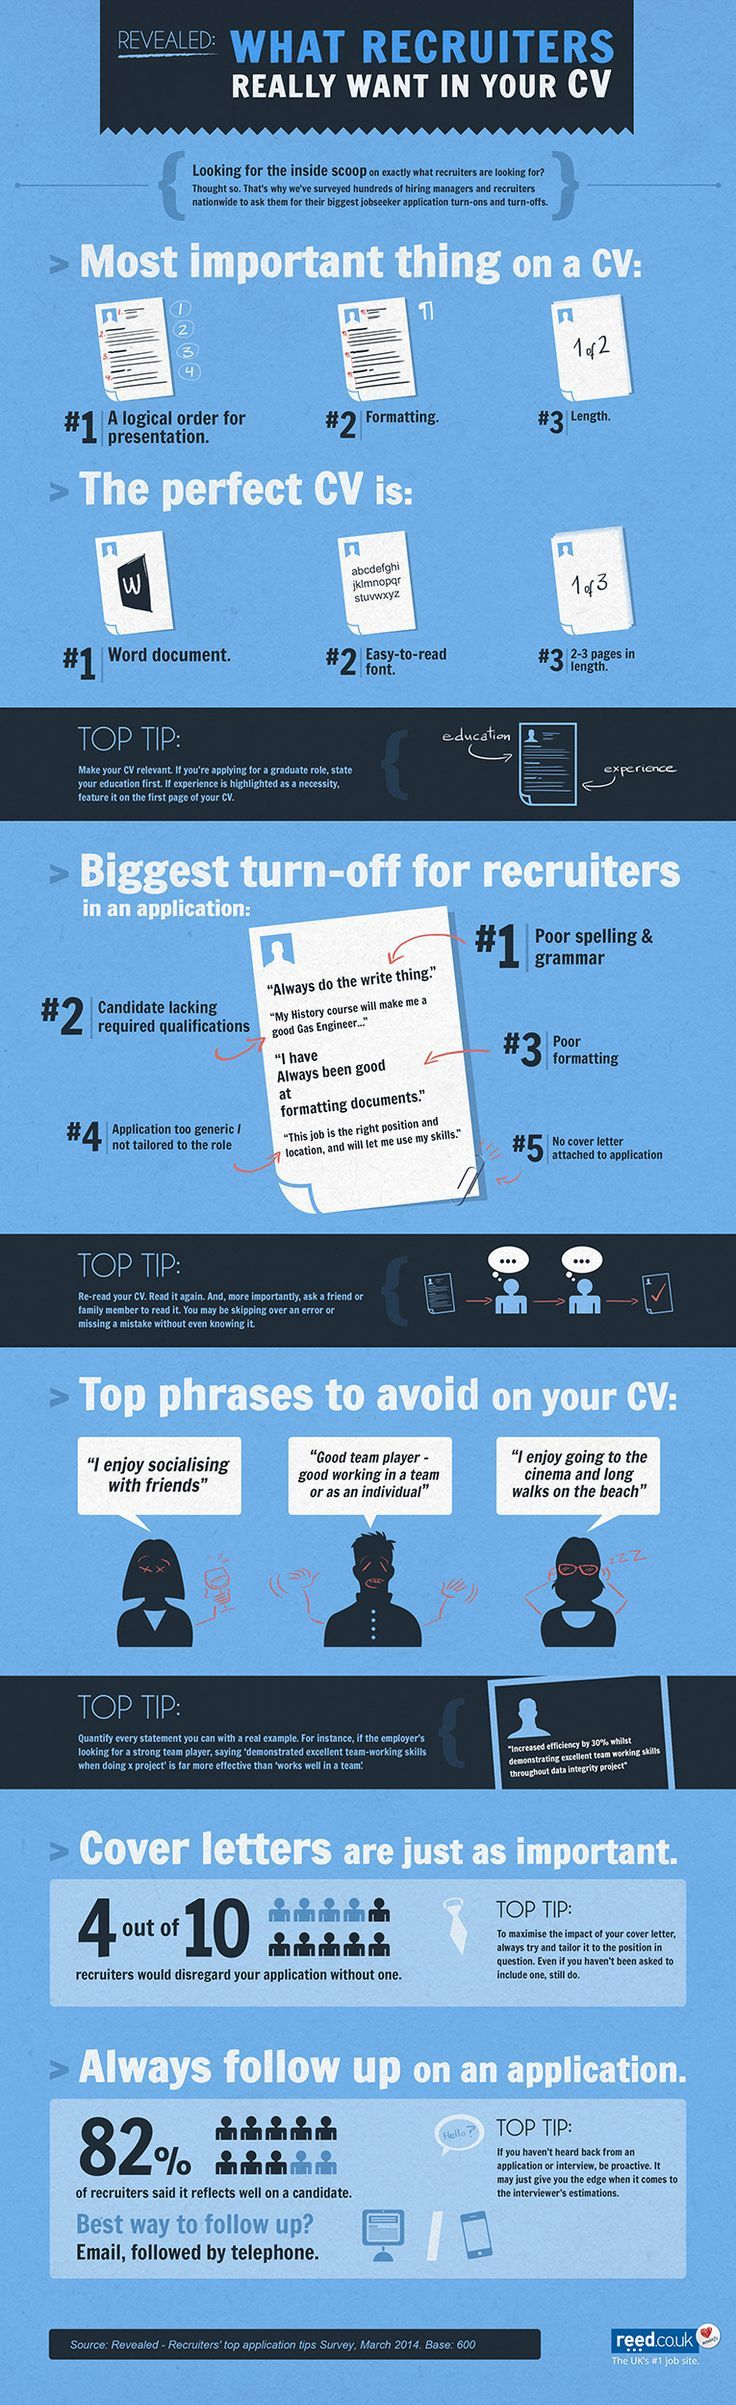 Revealed: What recruiters really want in your CV | Polish Your ...